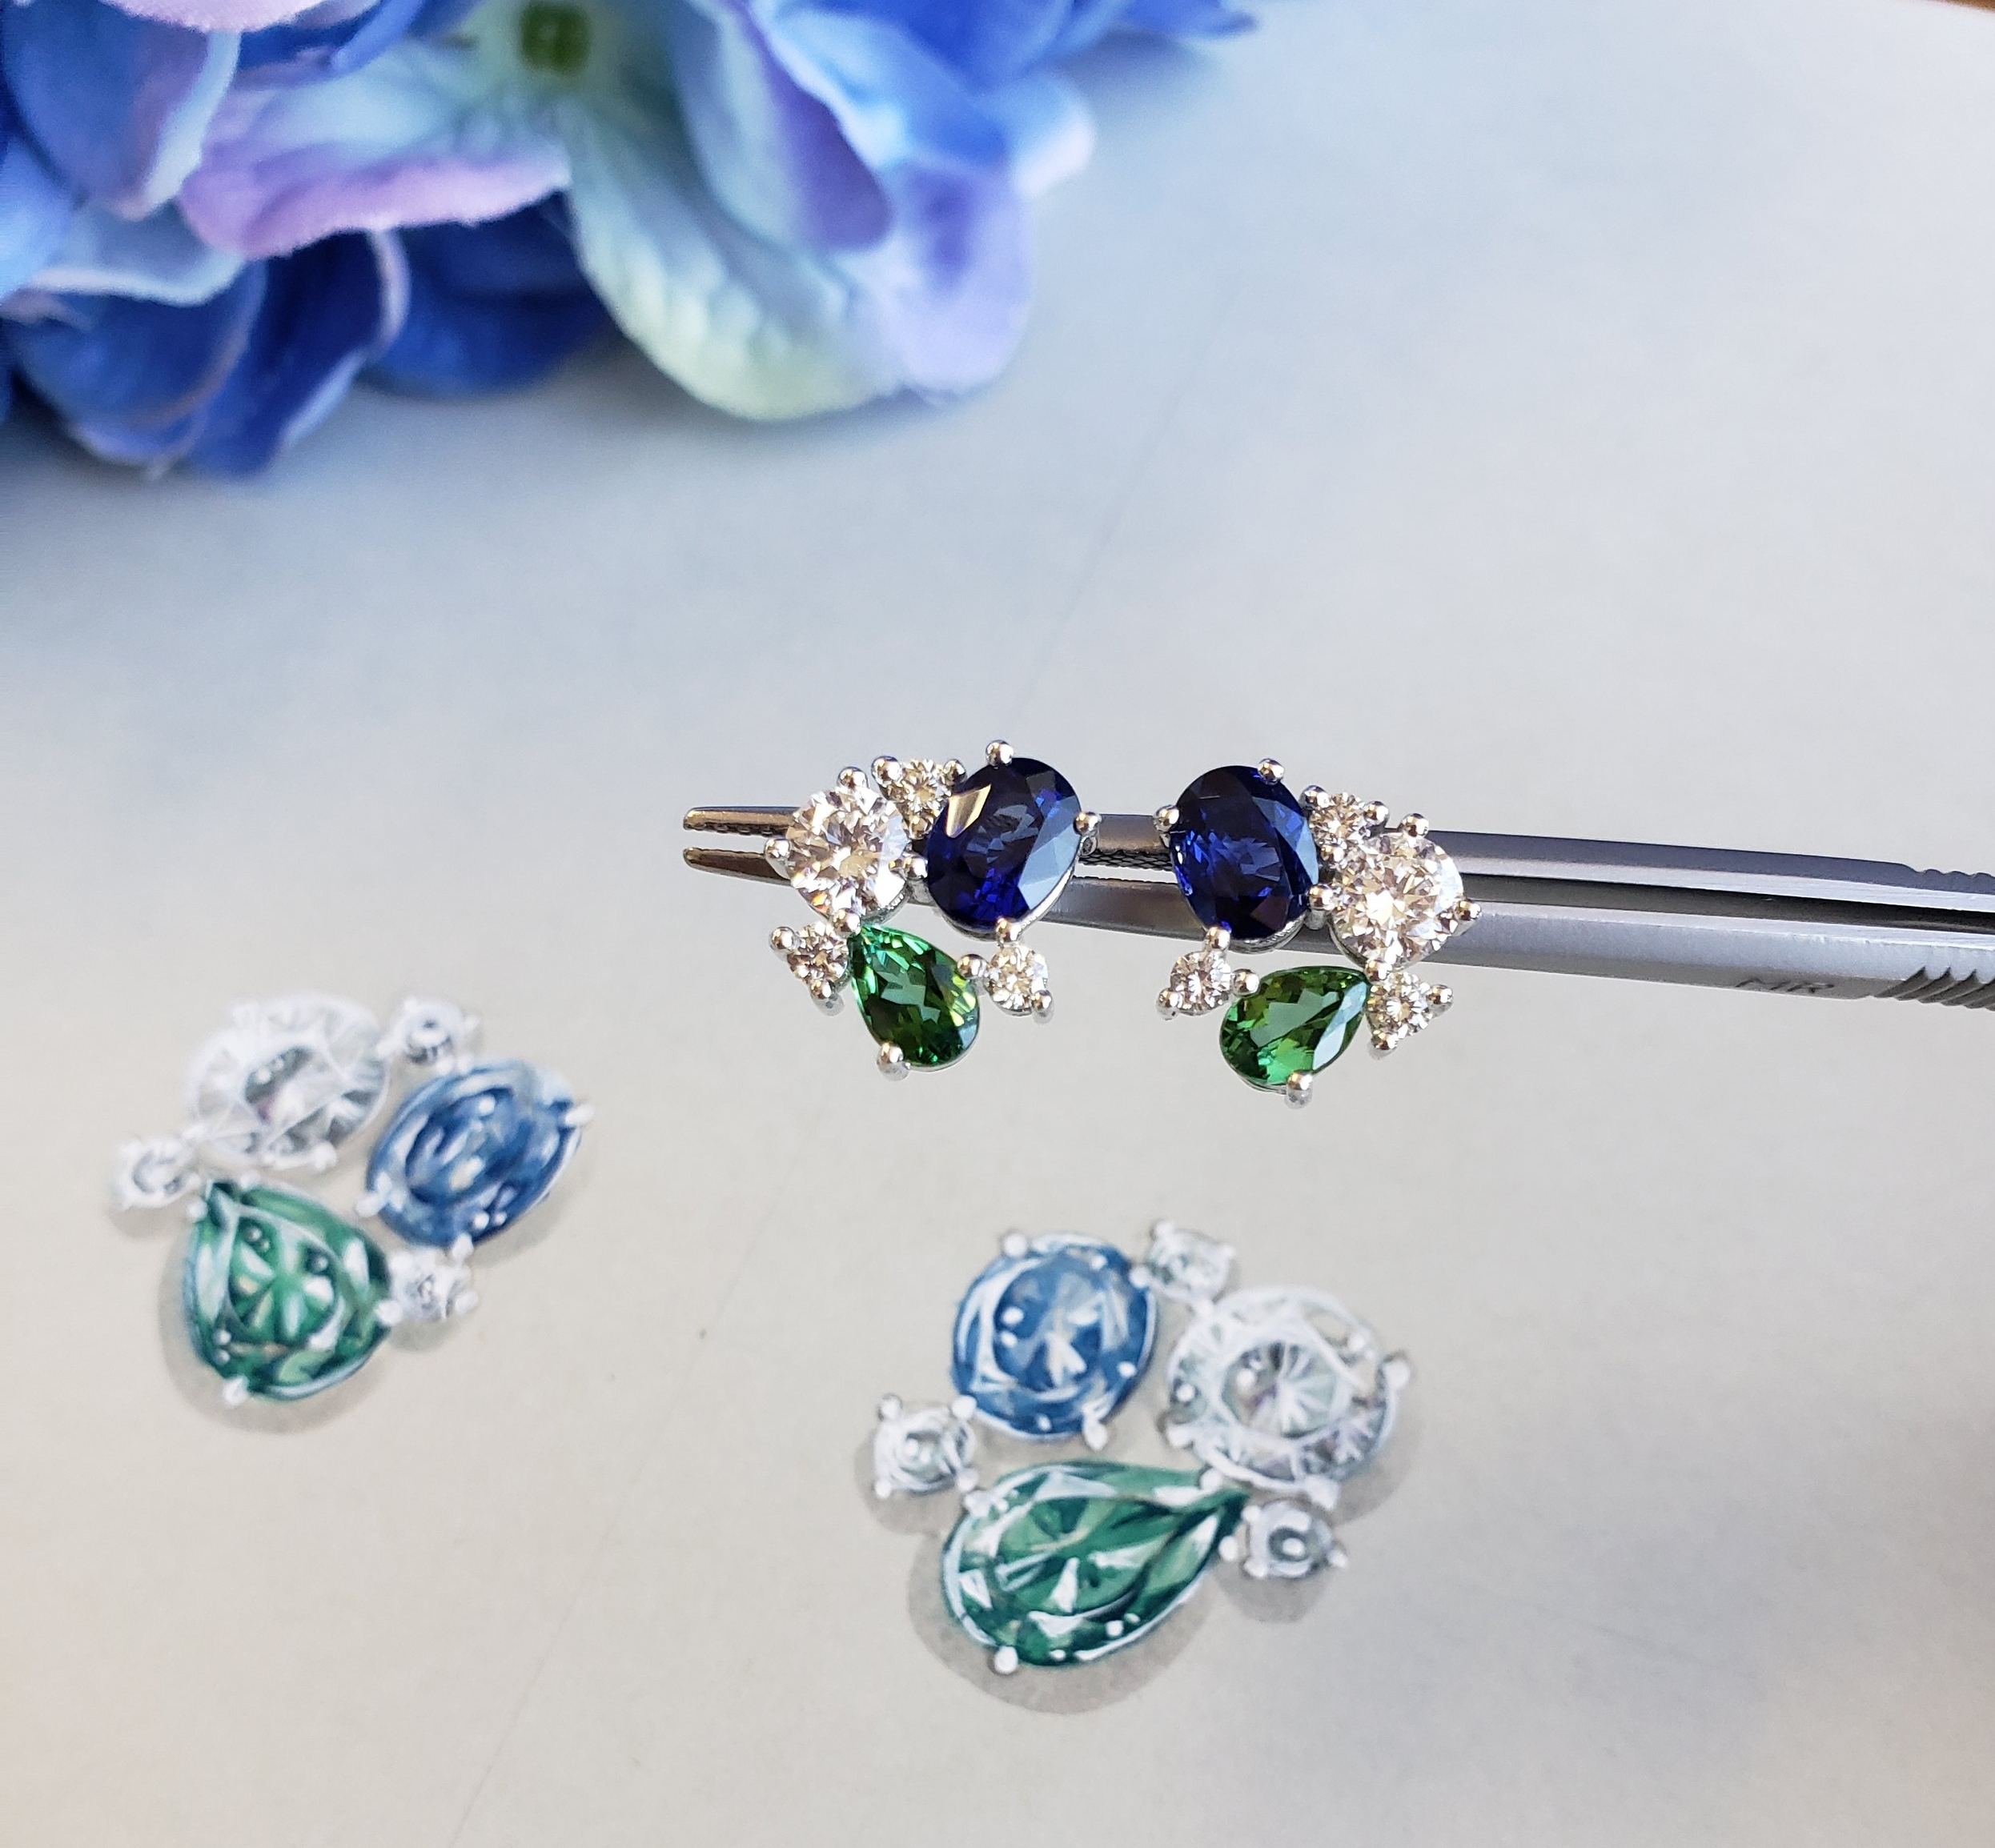 Step 3: We design - From concept to creation, Bonnie will design and source the diamonds and gemstones needed to bring your dream piece to life. Once approved in person or virtually, our master jewelers will begin crafting your piece.